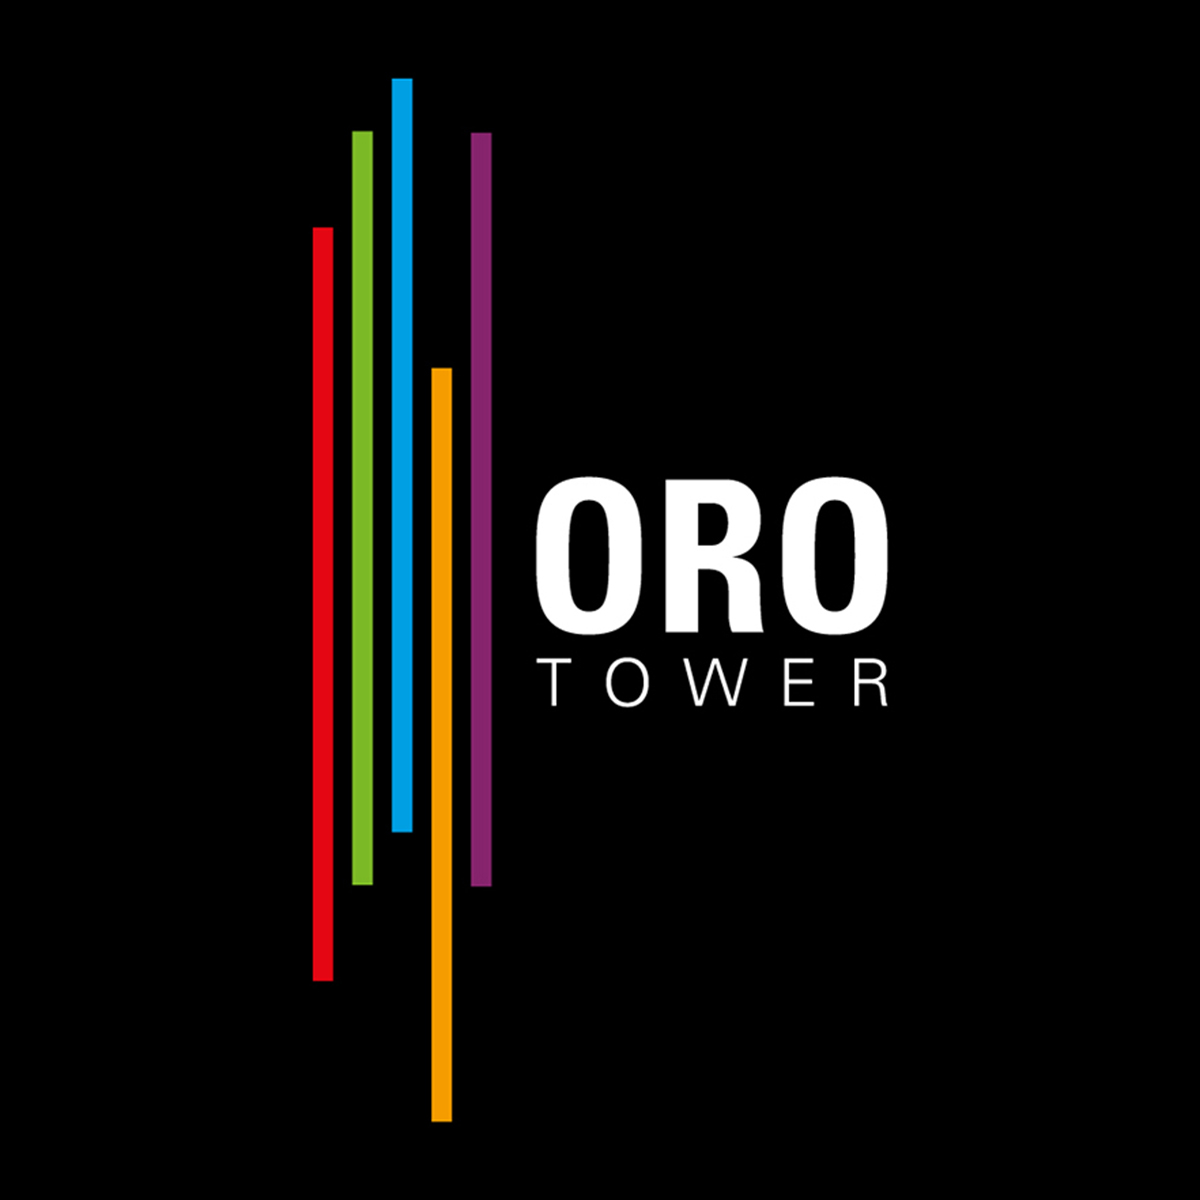 Oro Tower / Argentina / Naming / Marca